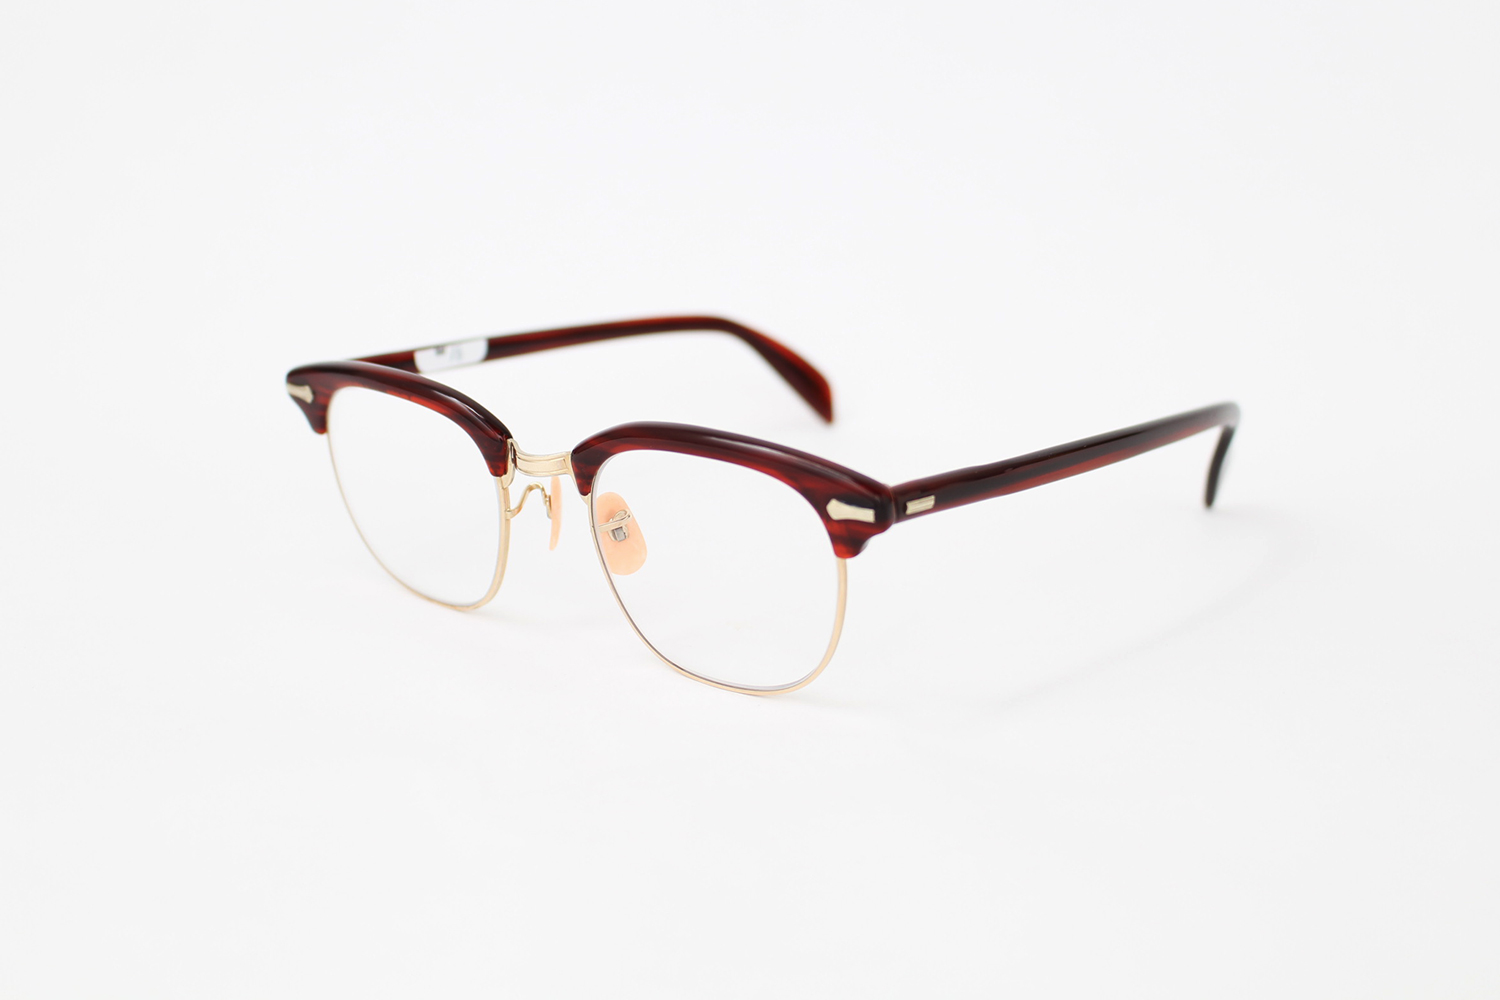 TS_Shuron_Optical_Company_Combination_1_10-12K_Gold_Filled_with_Cellulose_Acetate_red_2